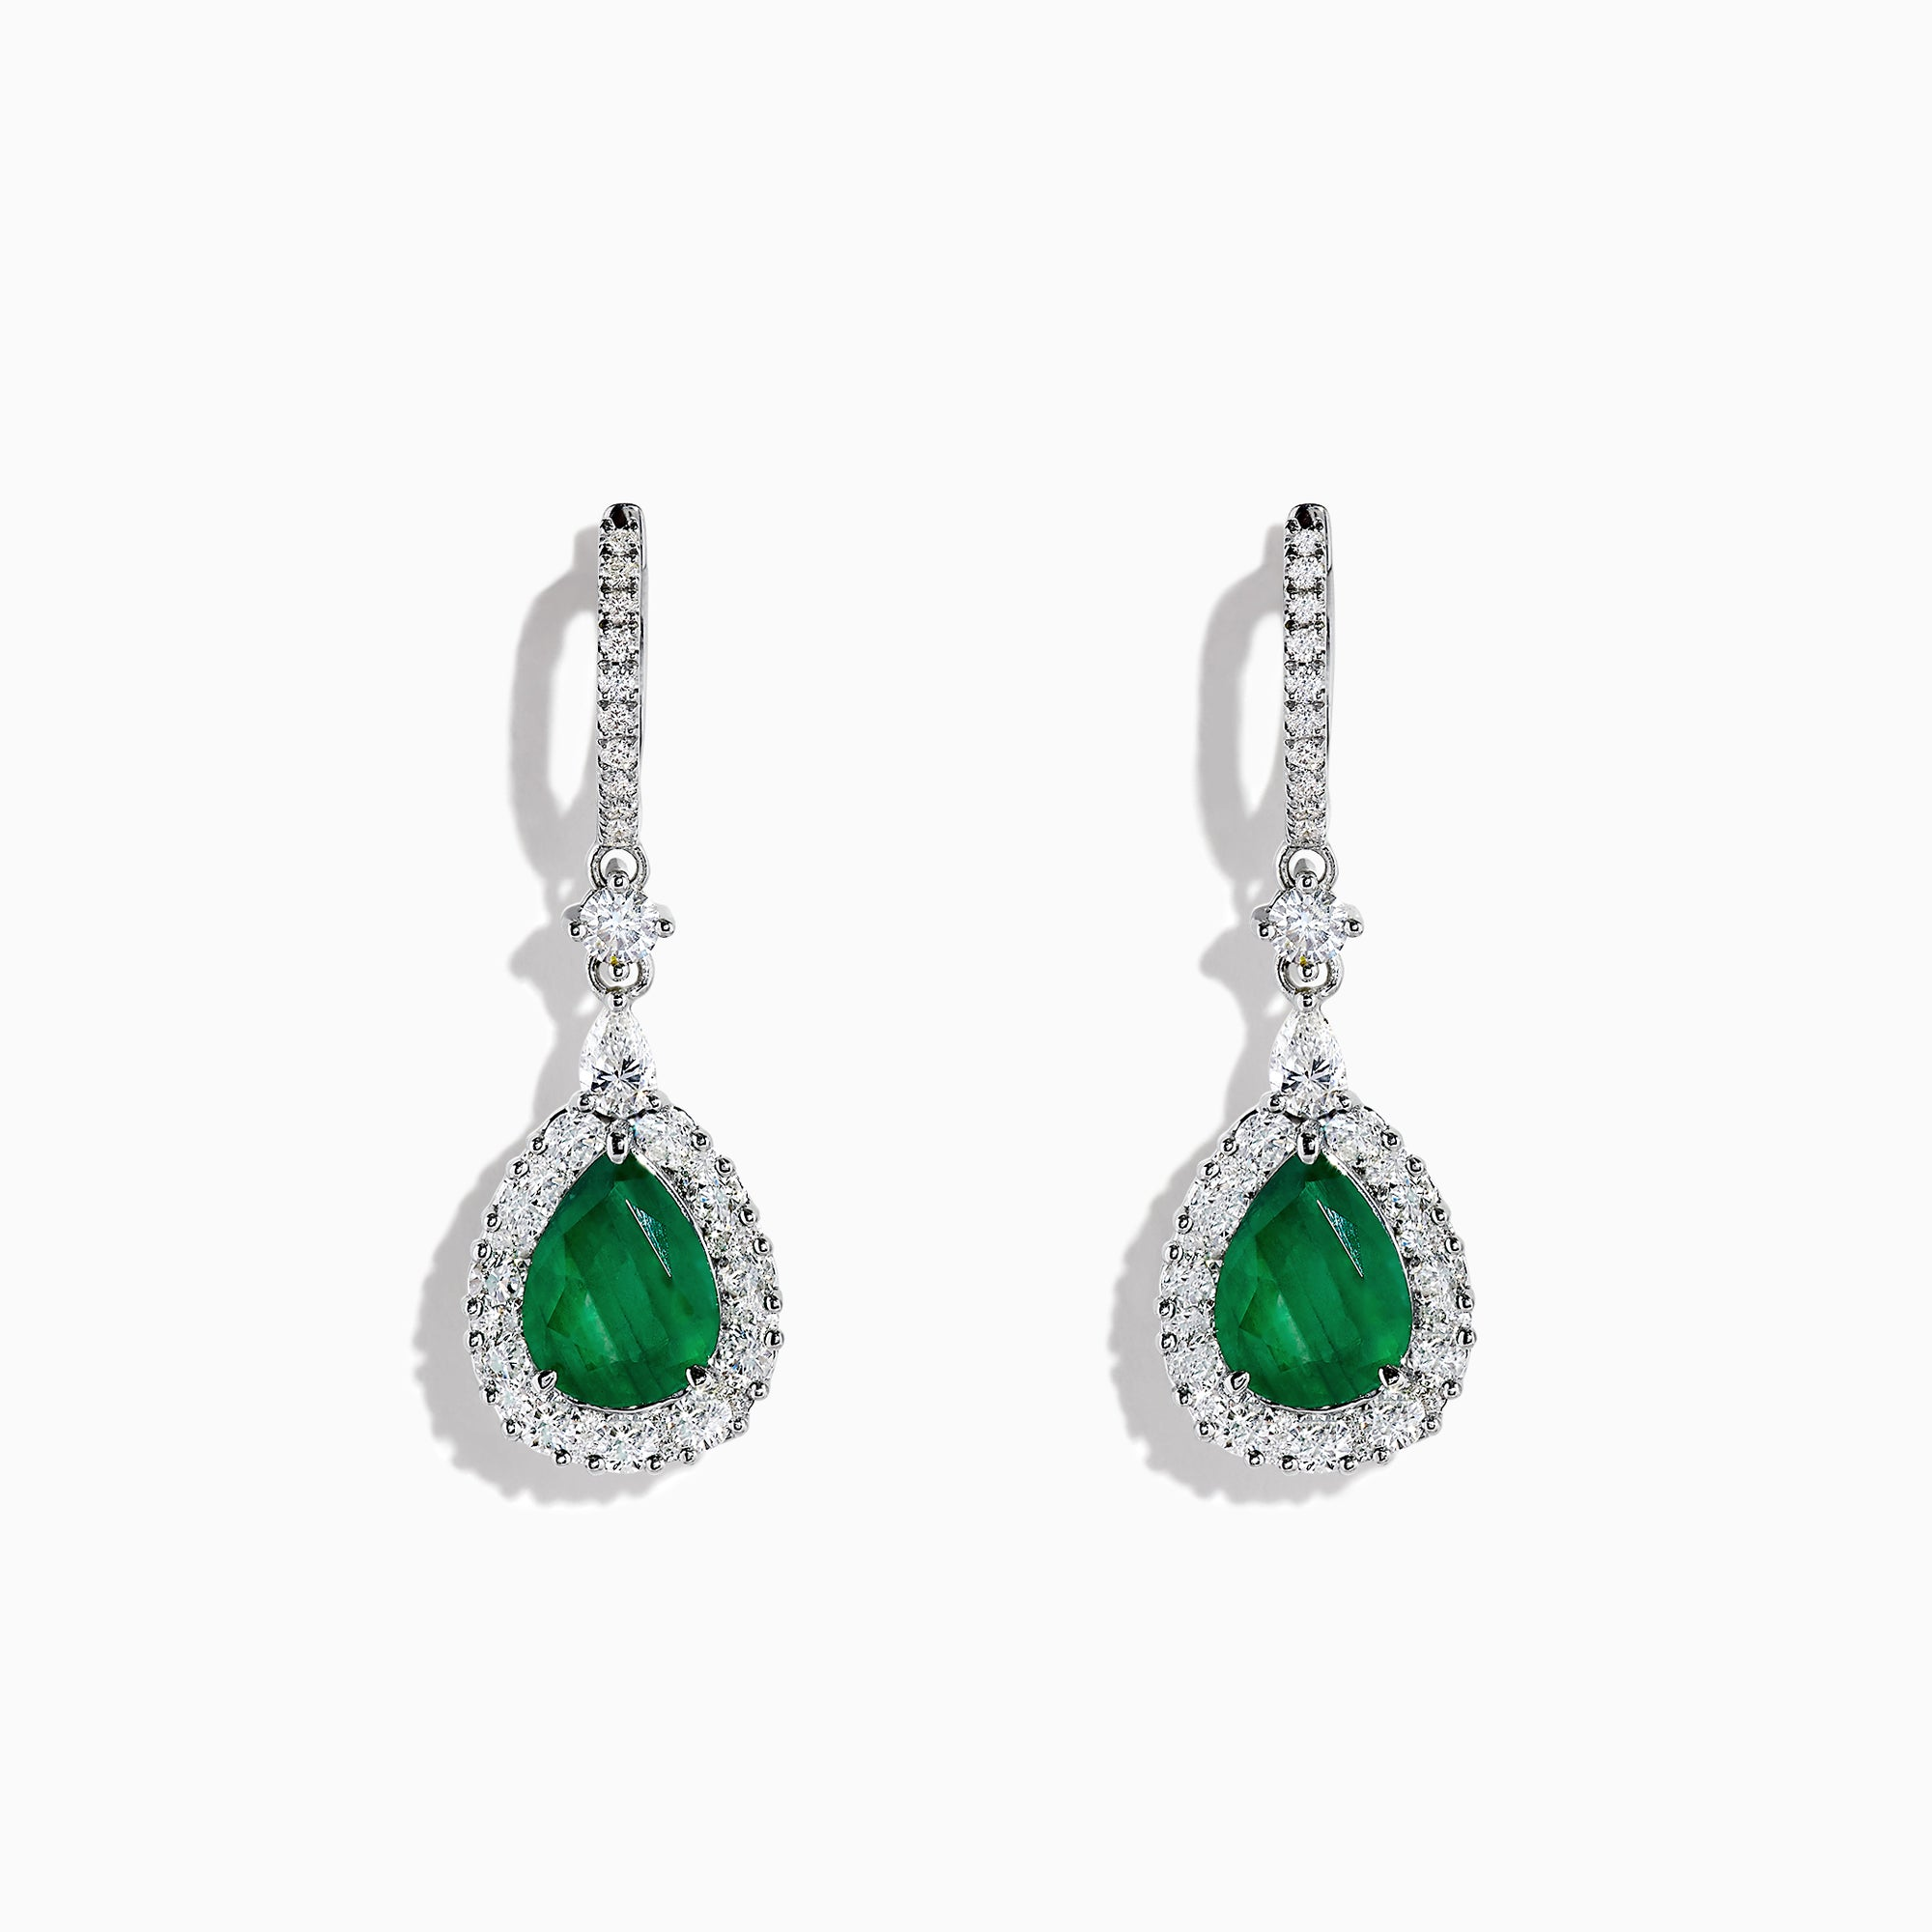 Effy Brasilica 14K White Gold Emerald and Diamond Drop Earrings, 4.04 TCW